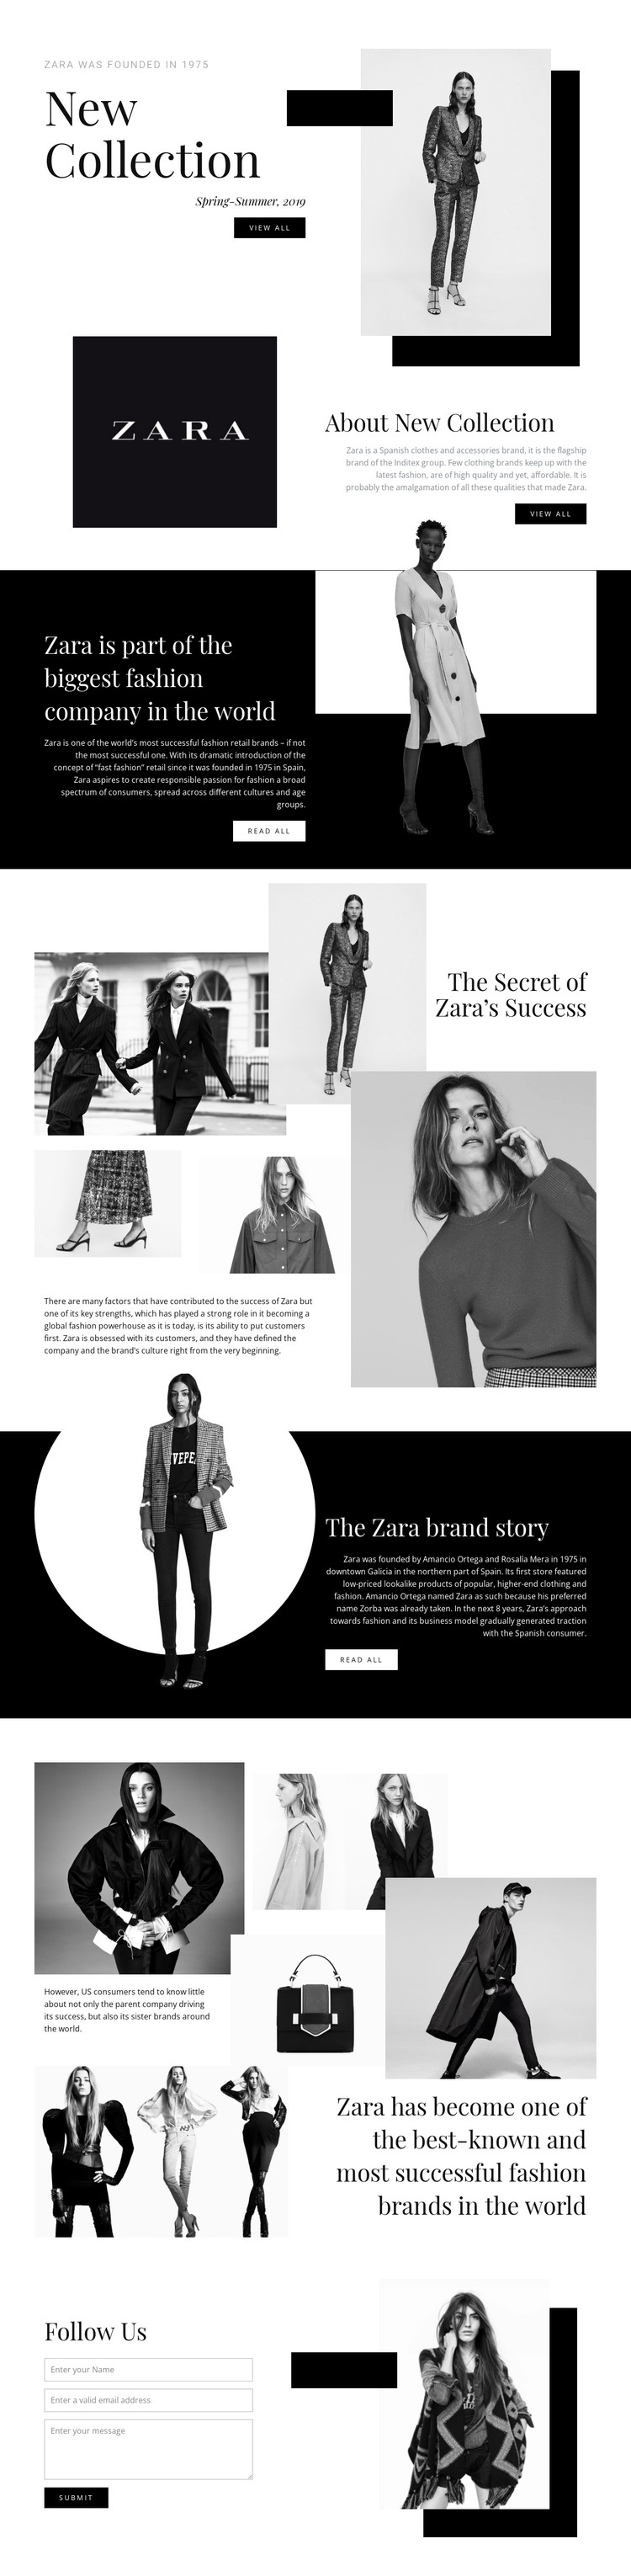 Zara collection Static Site Generator